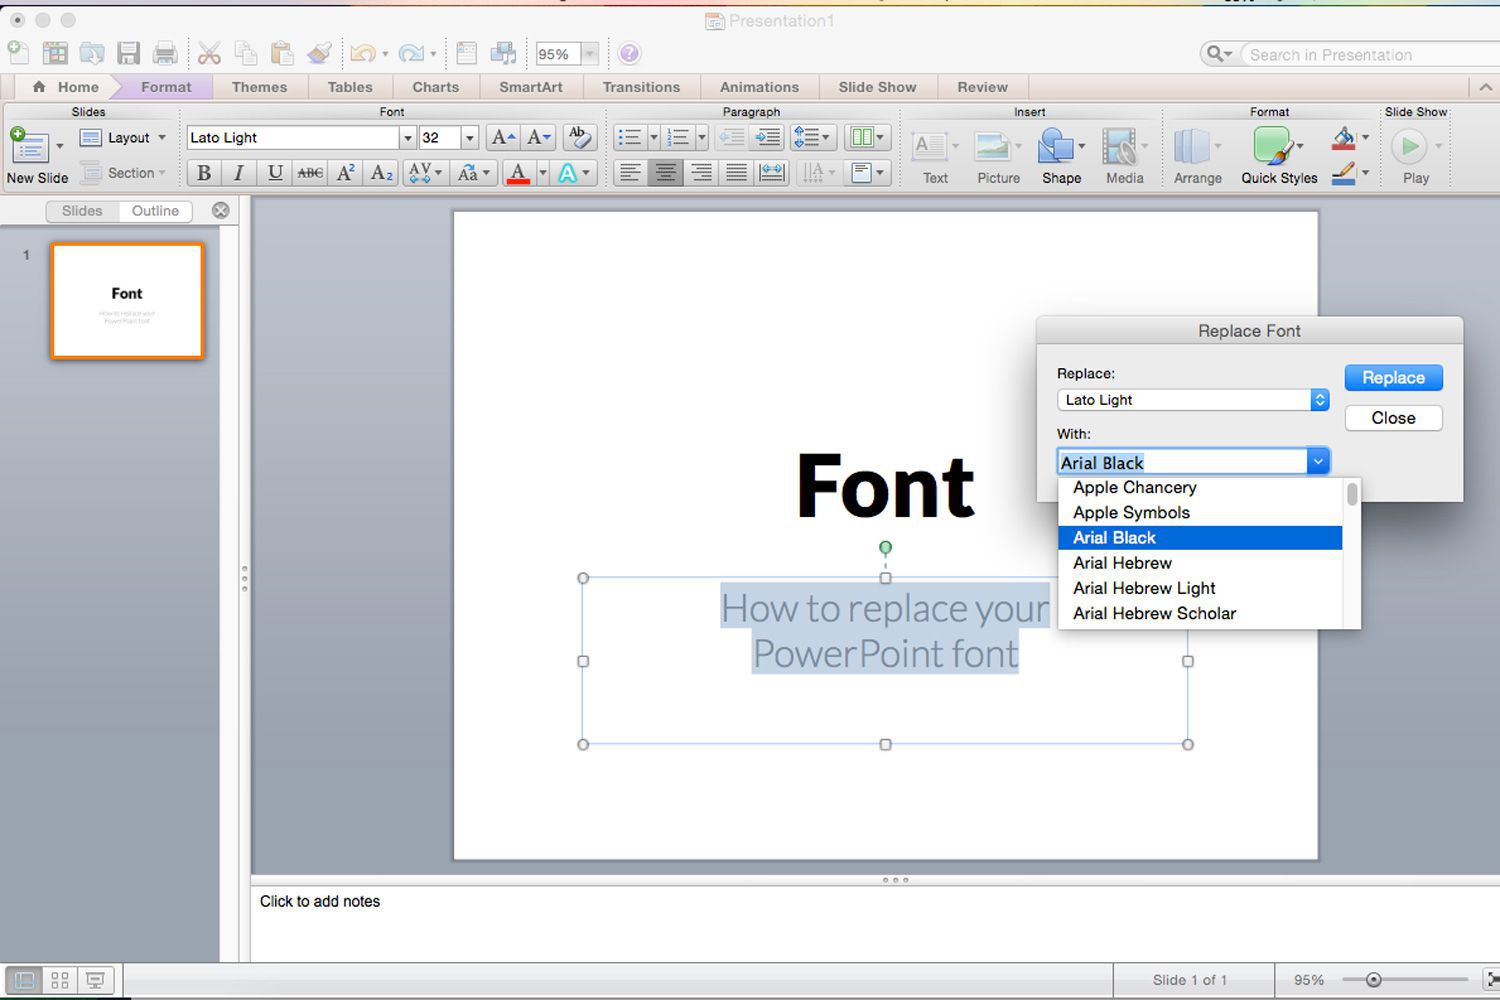 Replacing All The Fonts In My Presentation At One Time